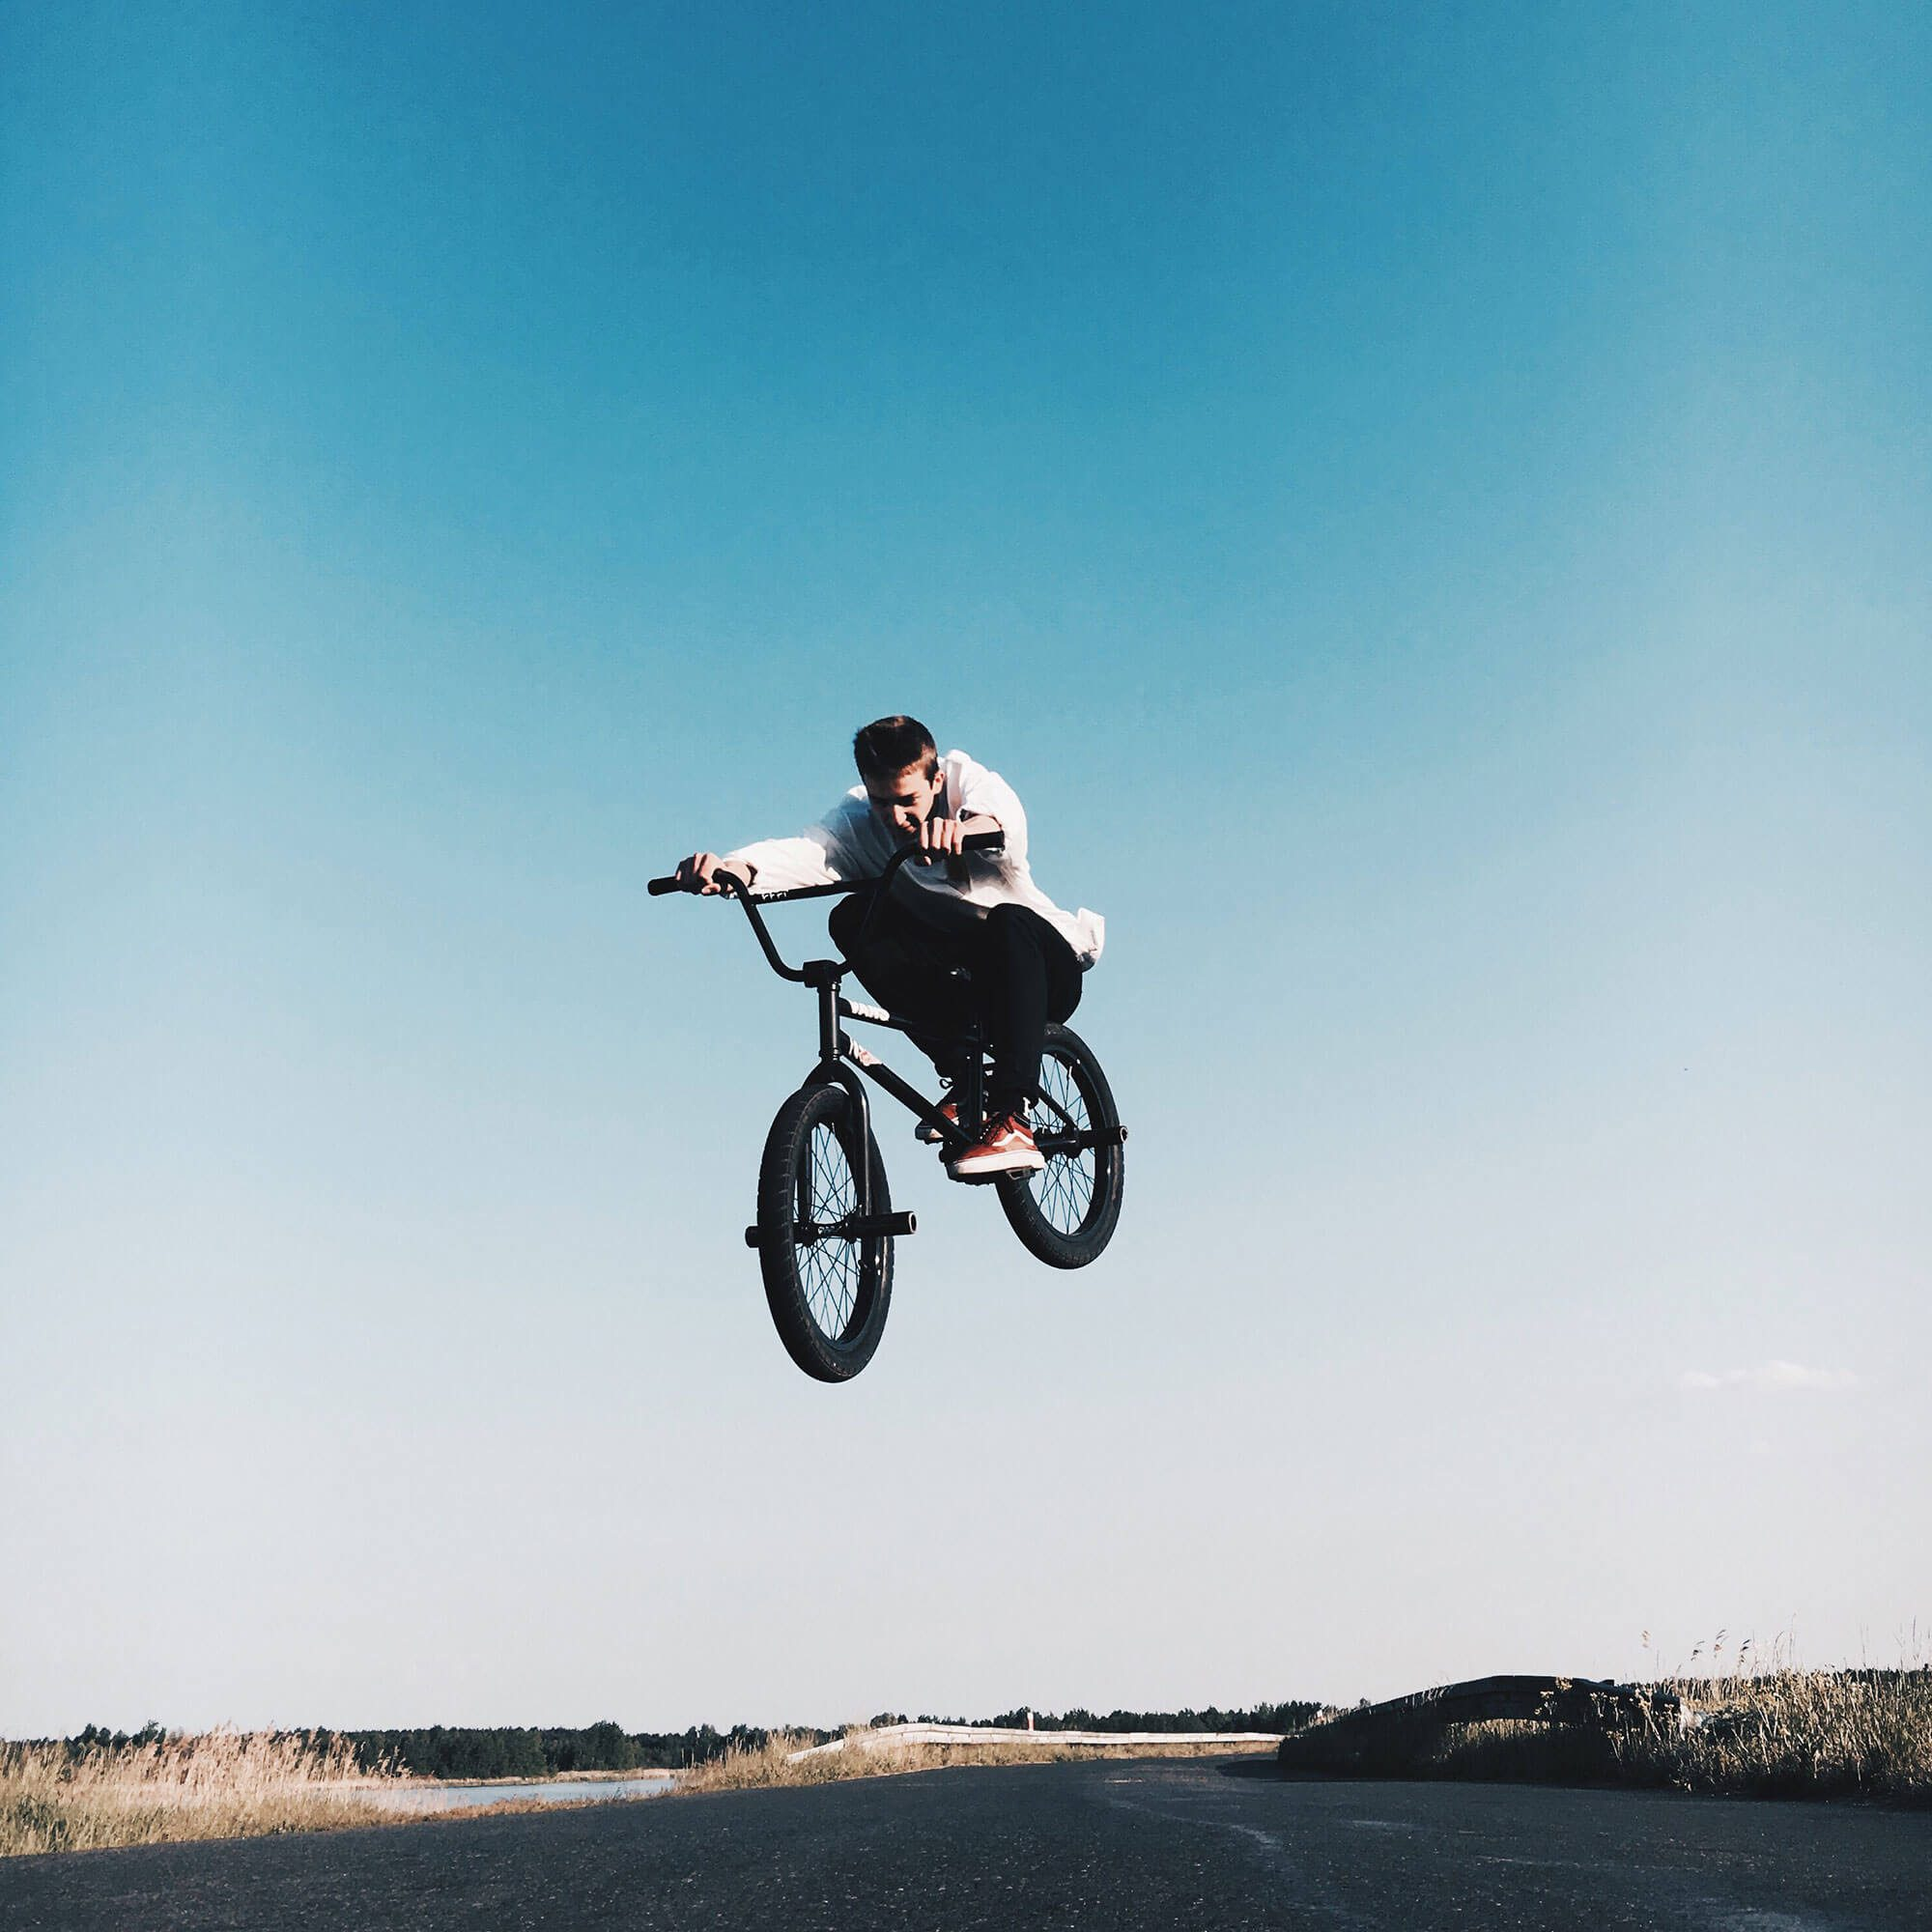 Boy on bmx in air